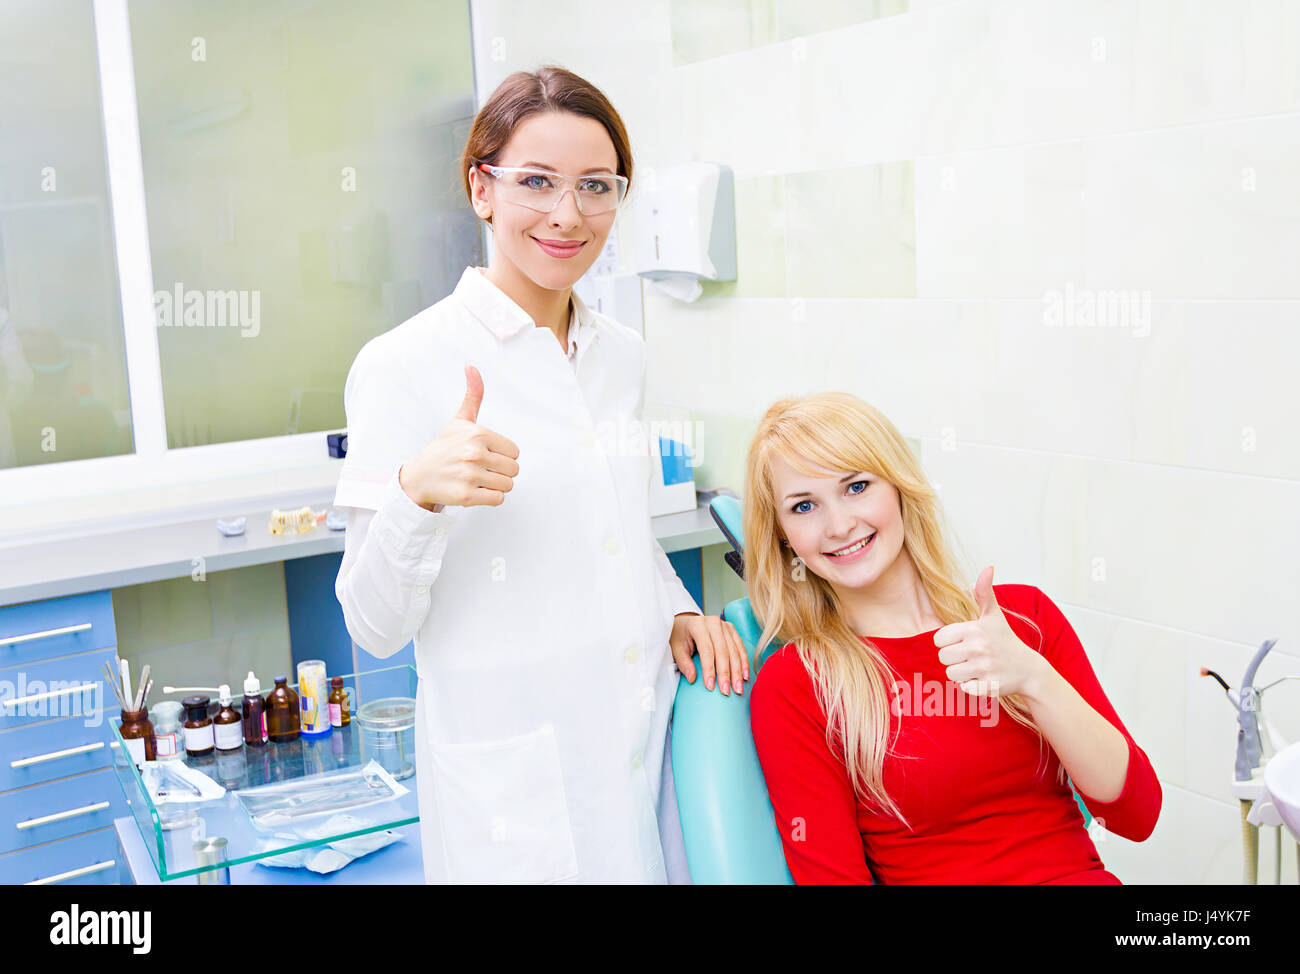 Closeup portrait happy female health care professional dentist, satisfied smiling woman patient in office giving - Stock Image